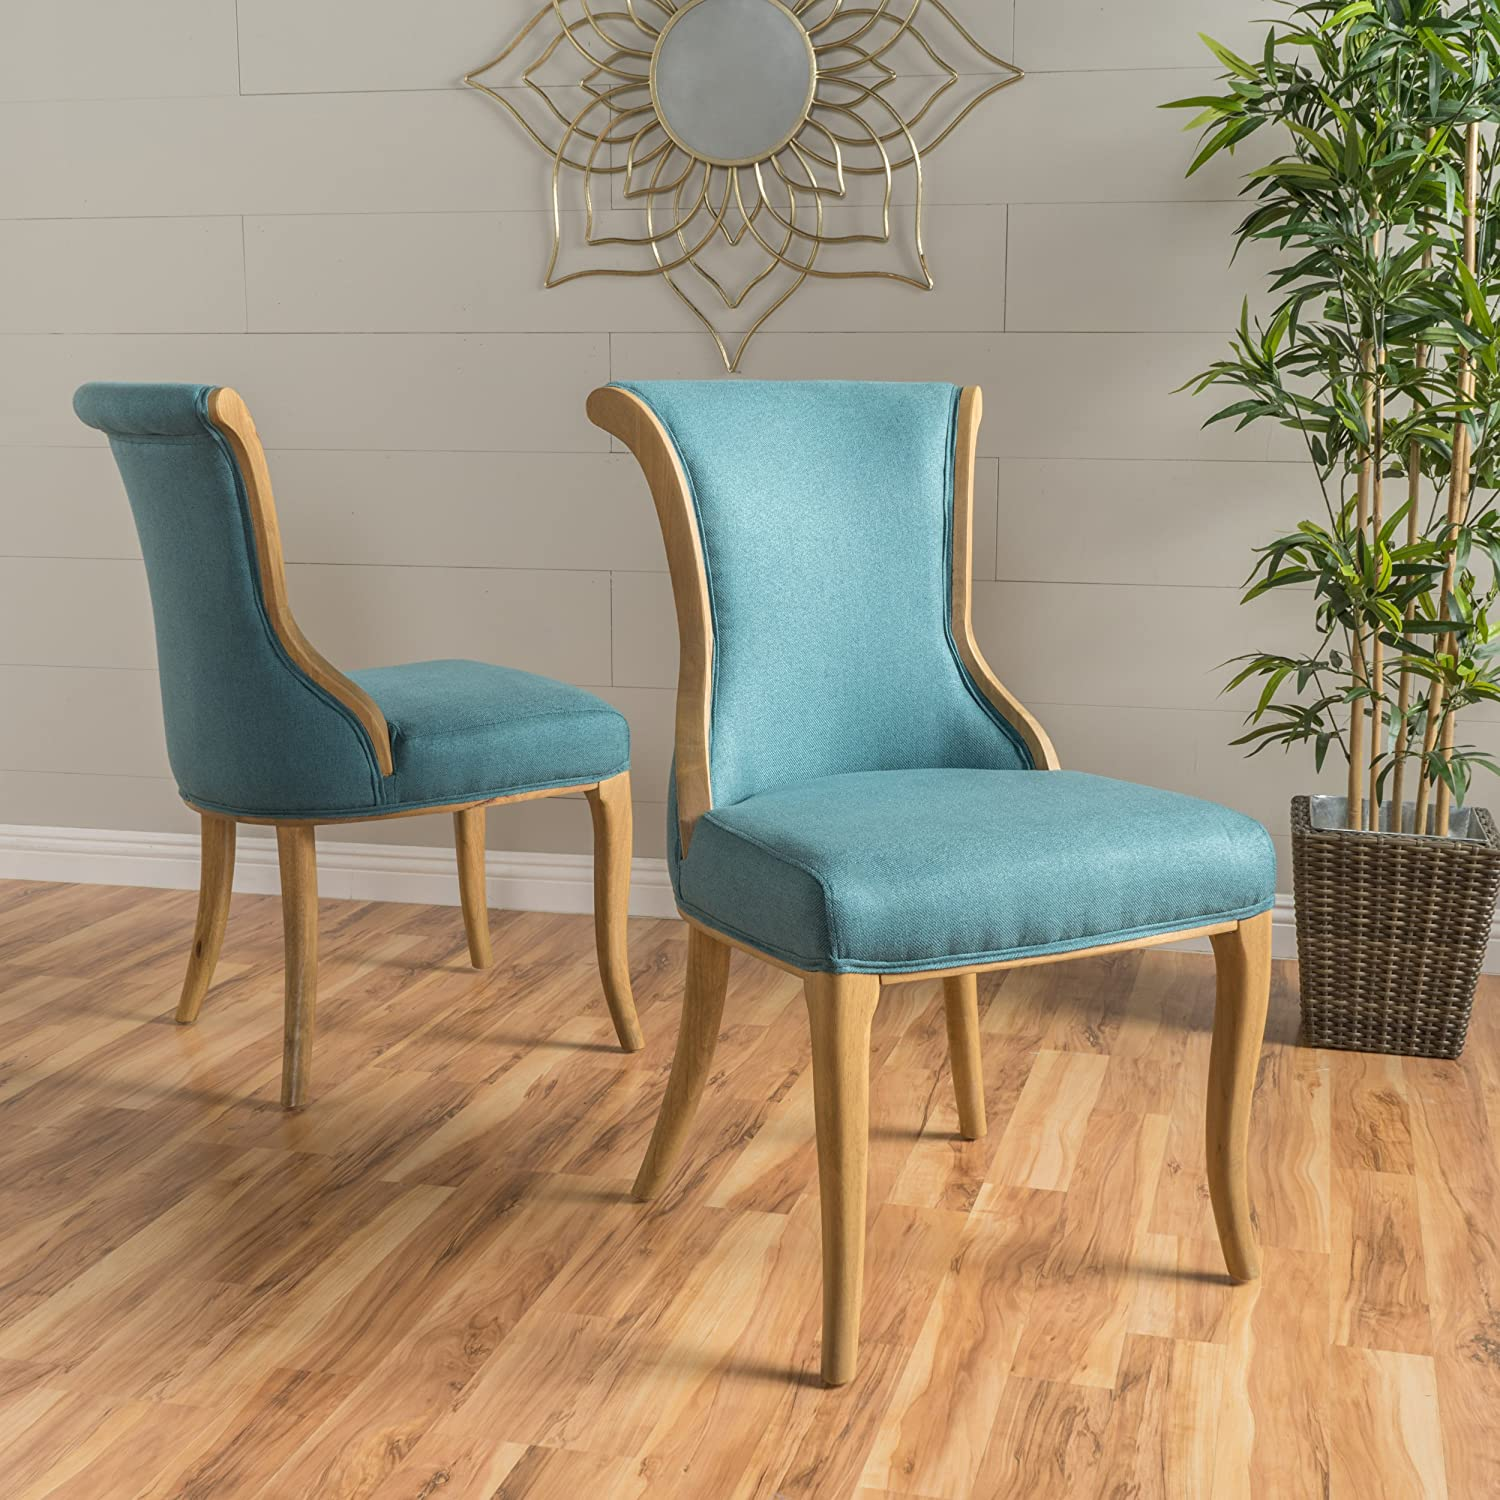 Christopher Knight Home 299511 Lexia Dark Teal Fabric Dining Chair